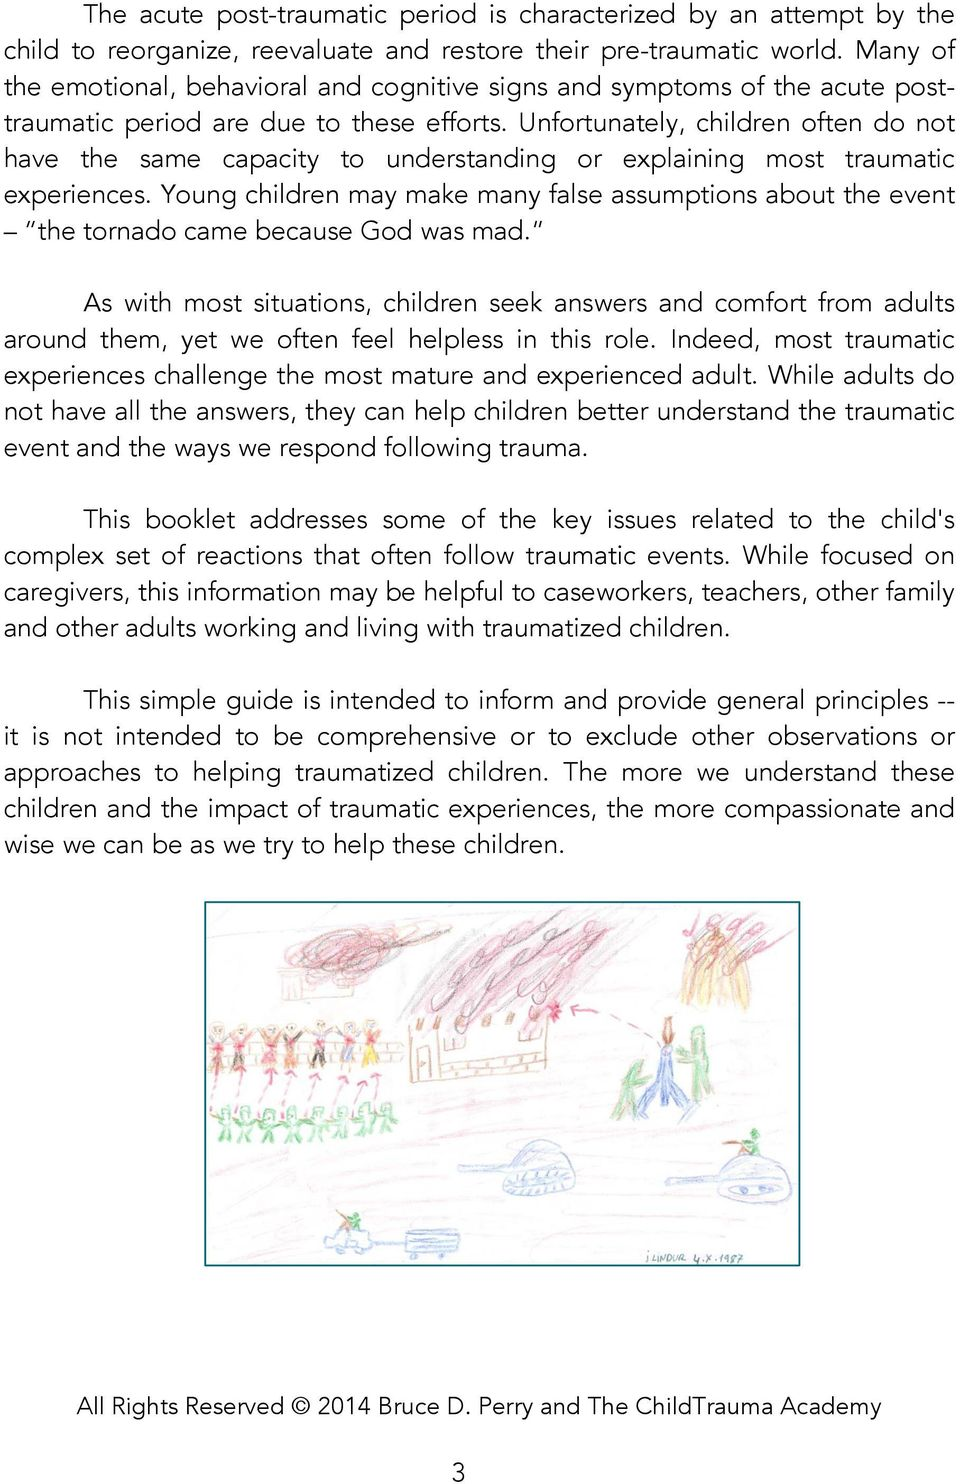 Unfortunately, children often do not have the same capacity to understanding or explaining most traumatic experiences.